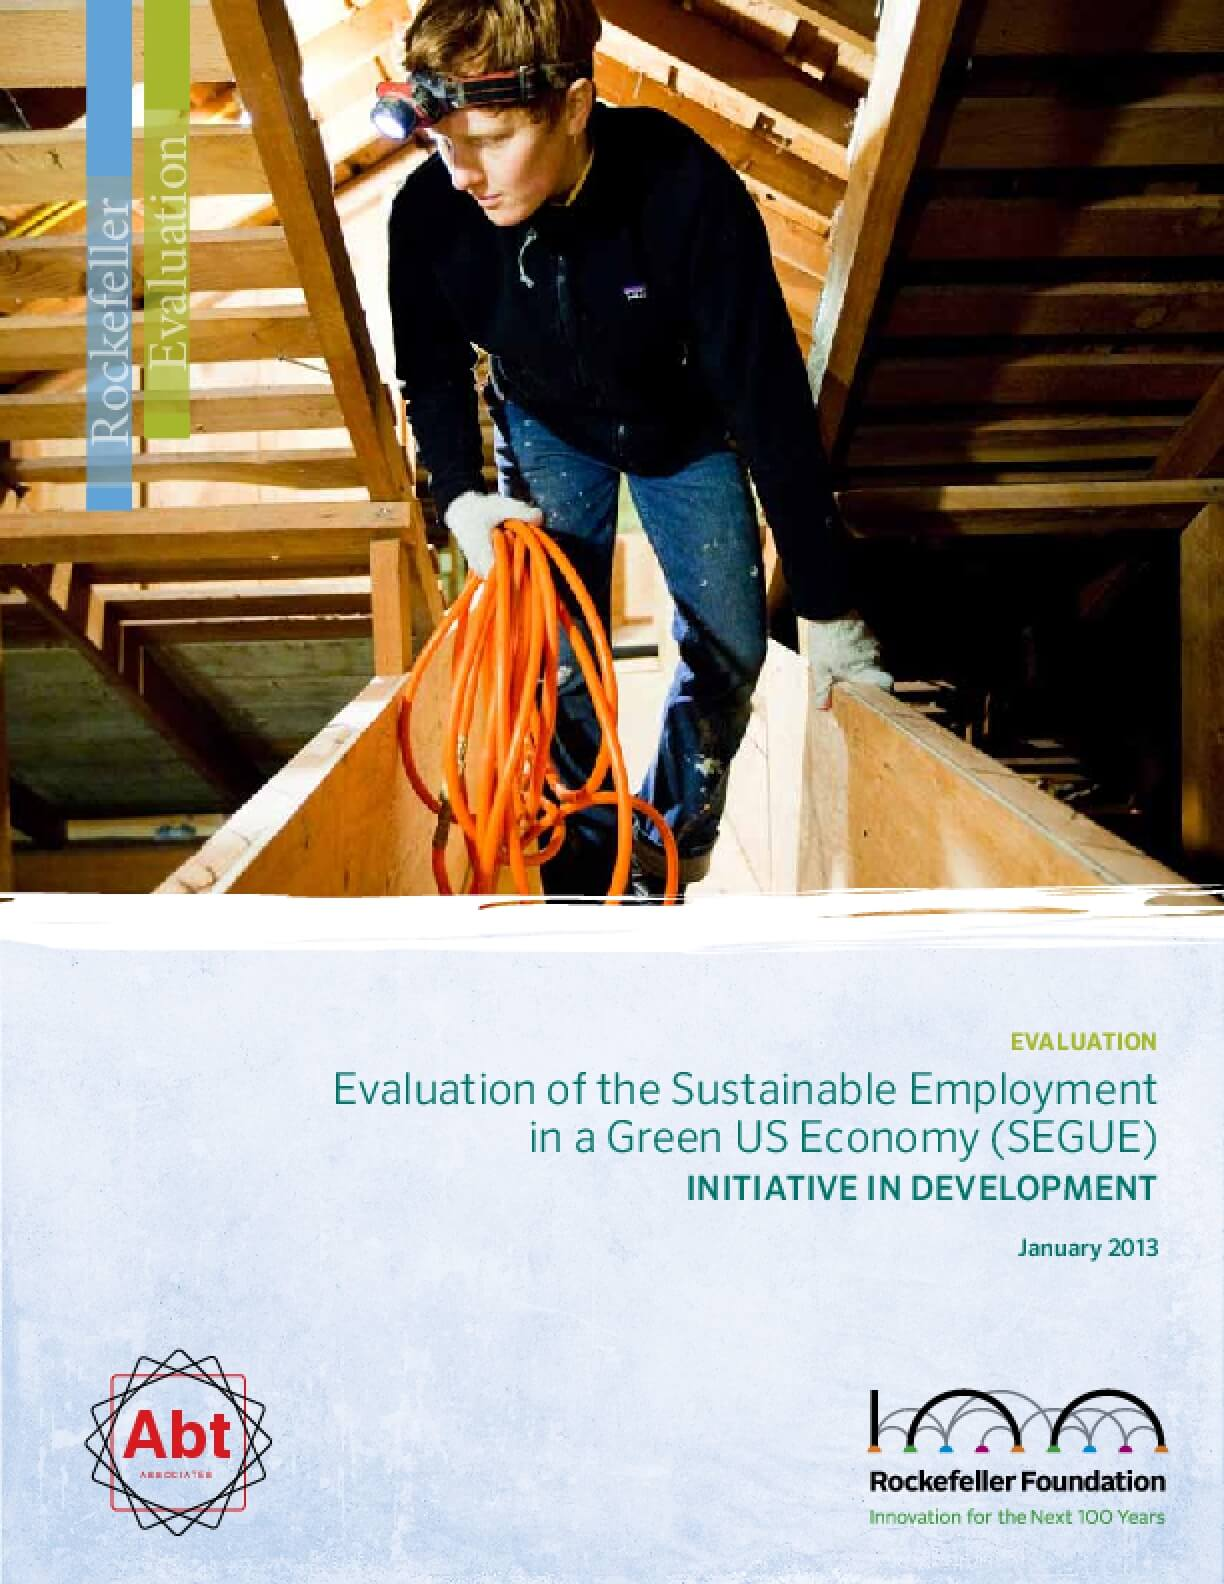 Evaluation of the Sustainable Employment in a Green US Economy (SEGUE)